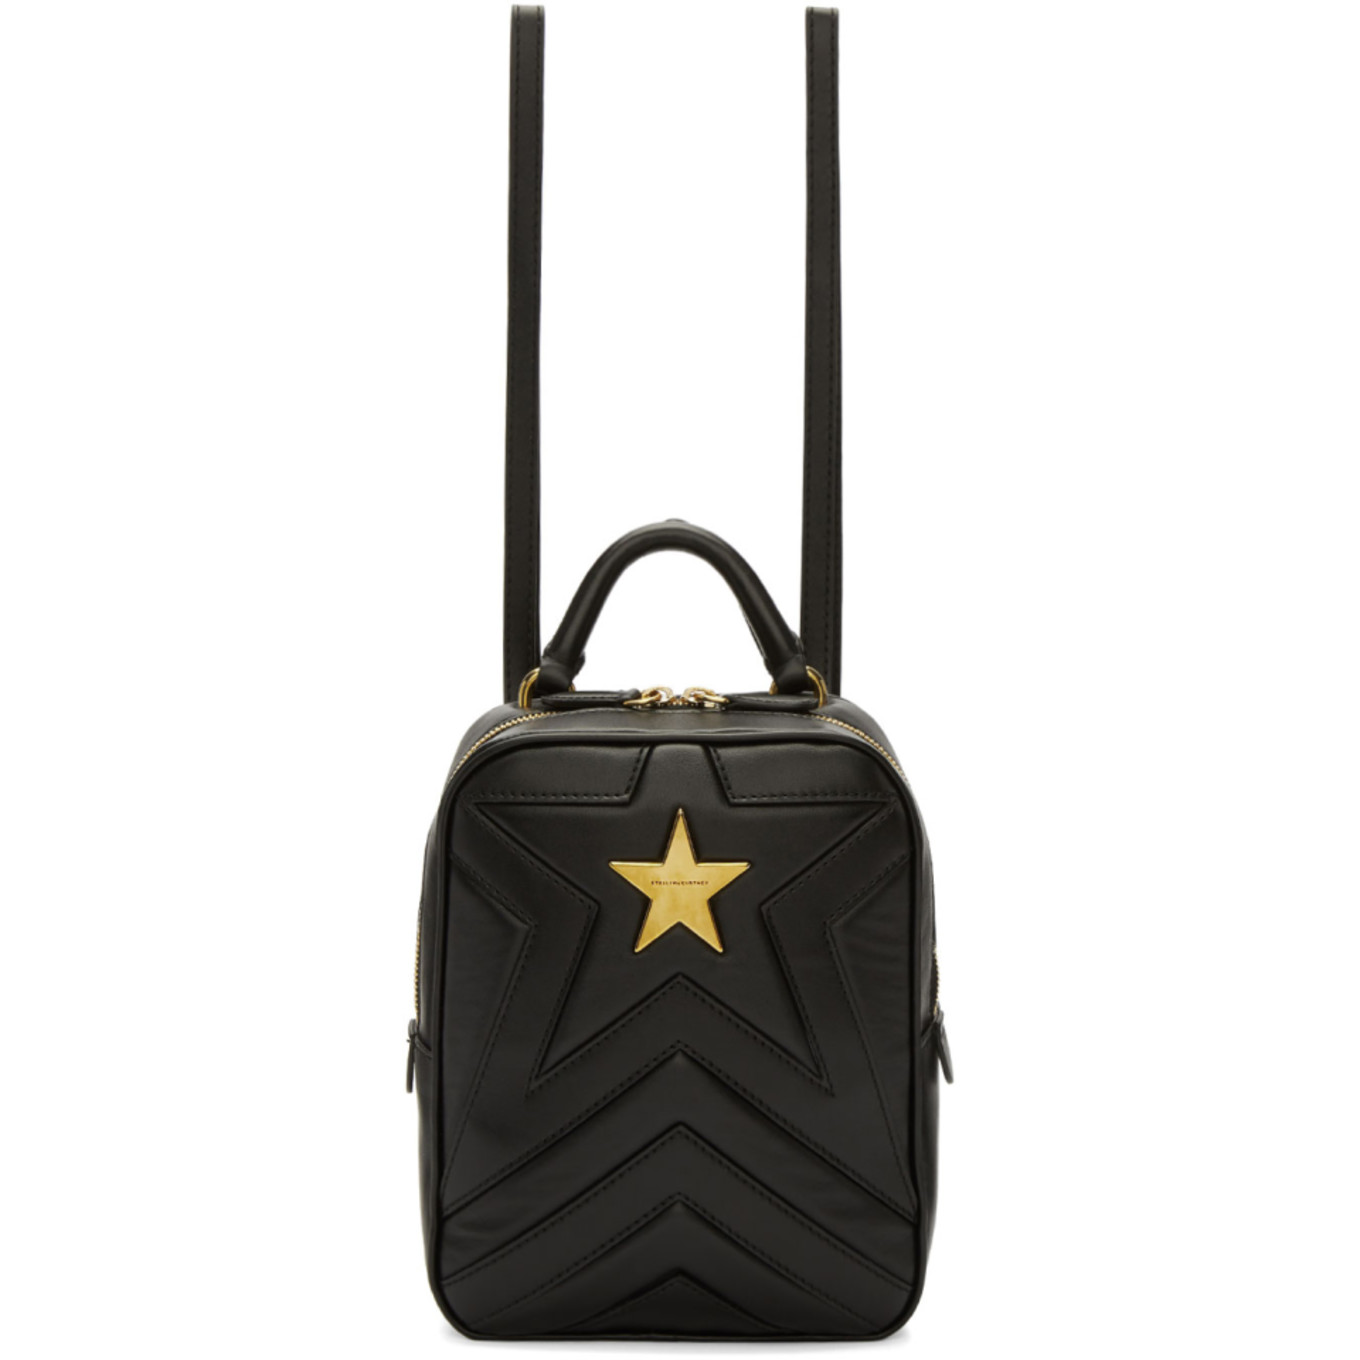 Black Small Quilted Star Backpack by Stella Mccartney